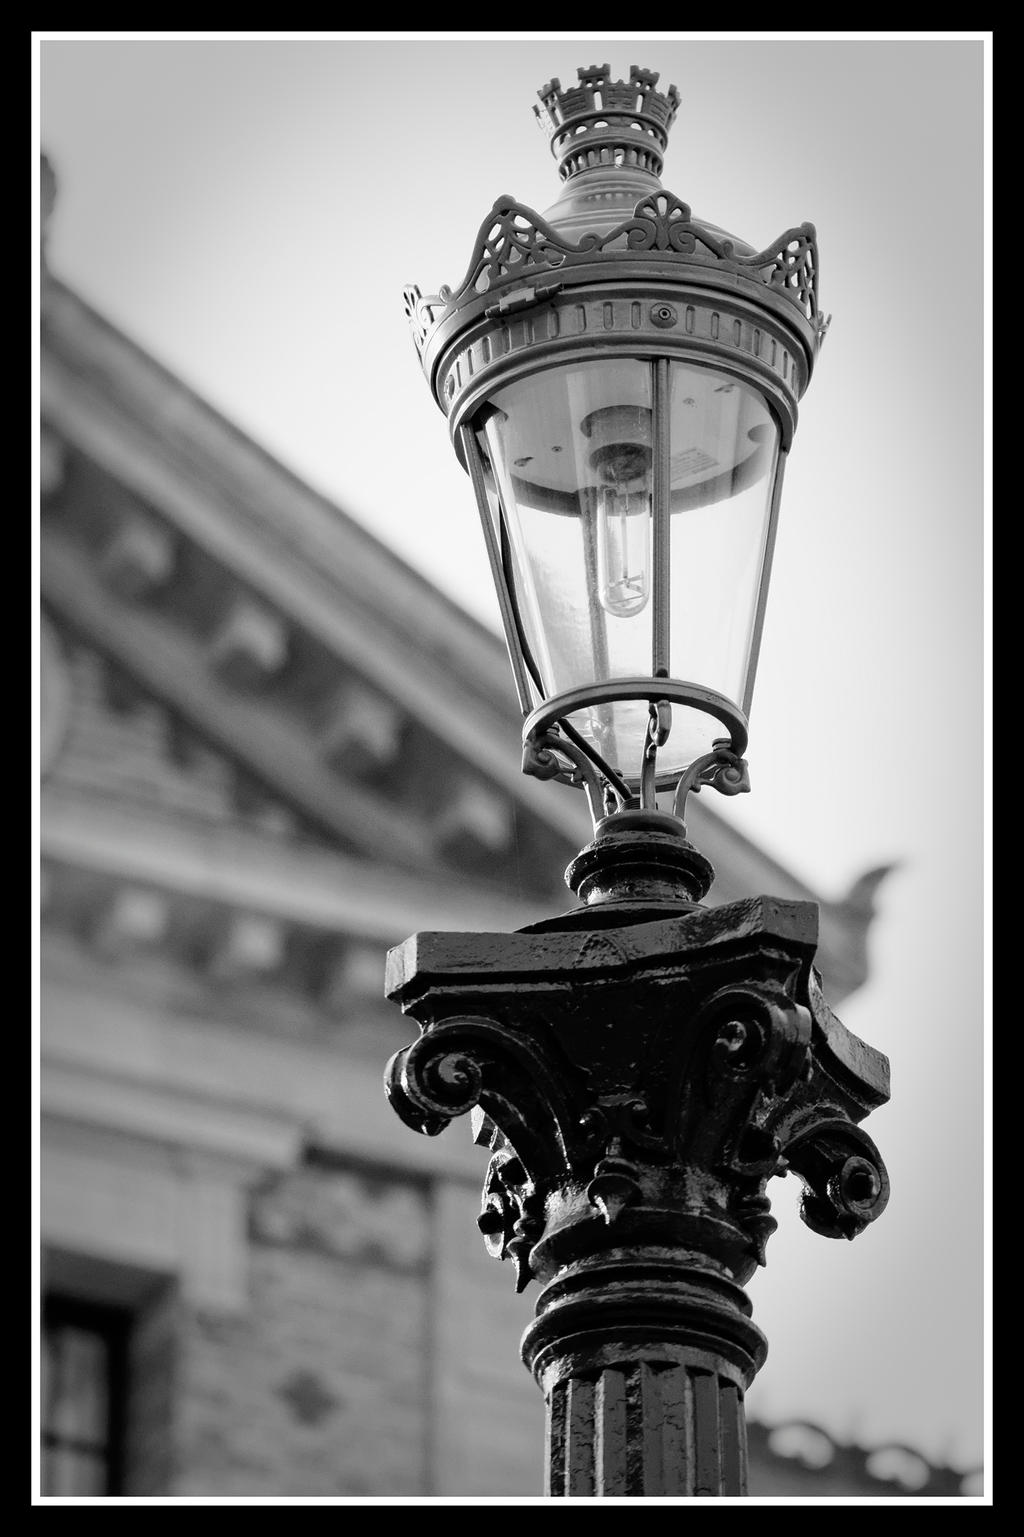 Parlons Photographie - Page 14 Lampadaire__by_noctalyss-d71ehcc